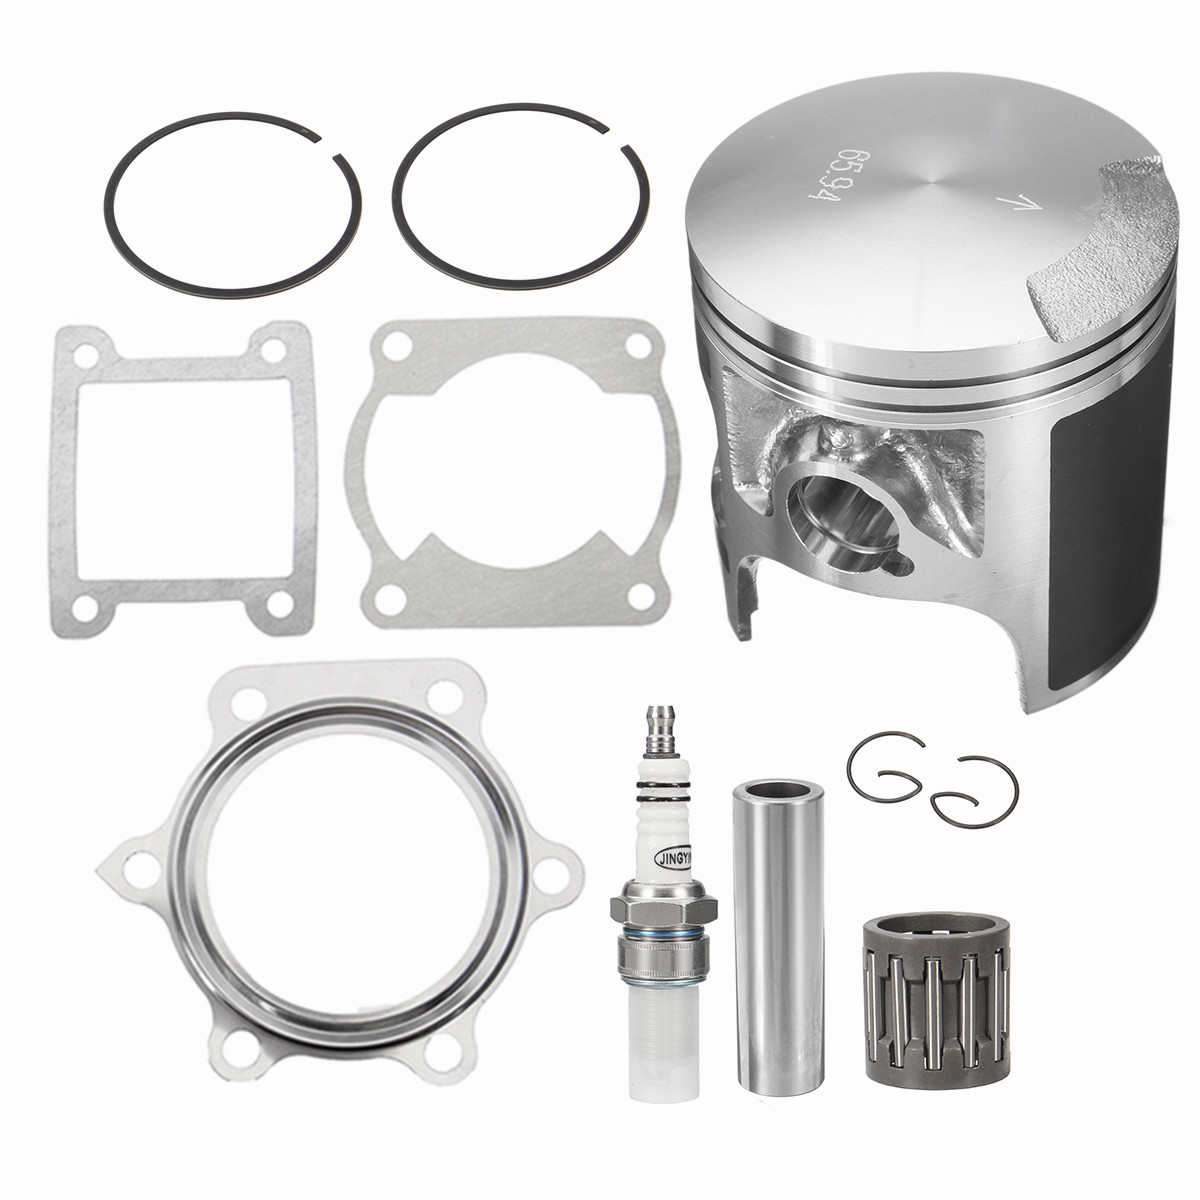 Piston Gasket Piston Rings Top End Gasket Kit Fit For Yamaha For Blaster 200 YFS200 1988-2006 For Spark Plug Needle Bearing